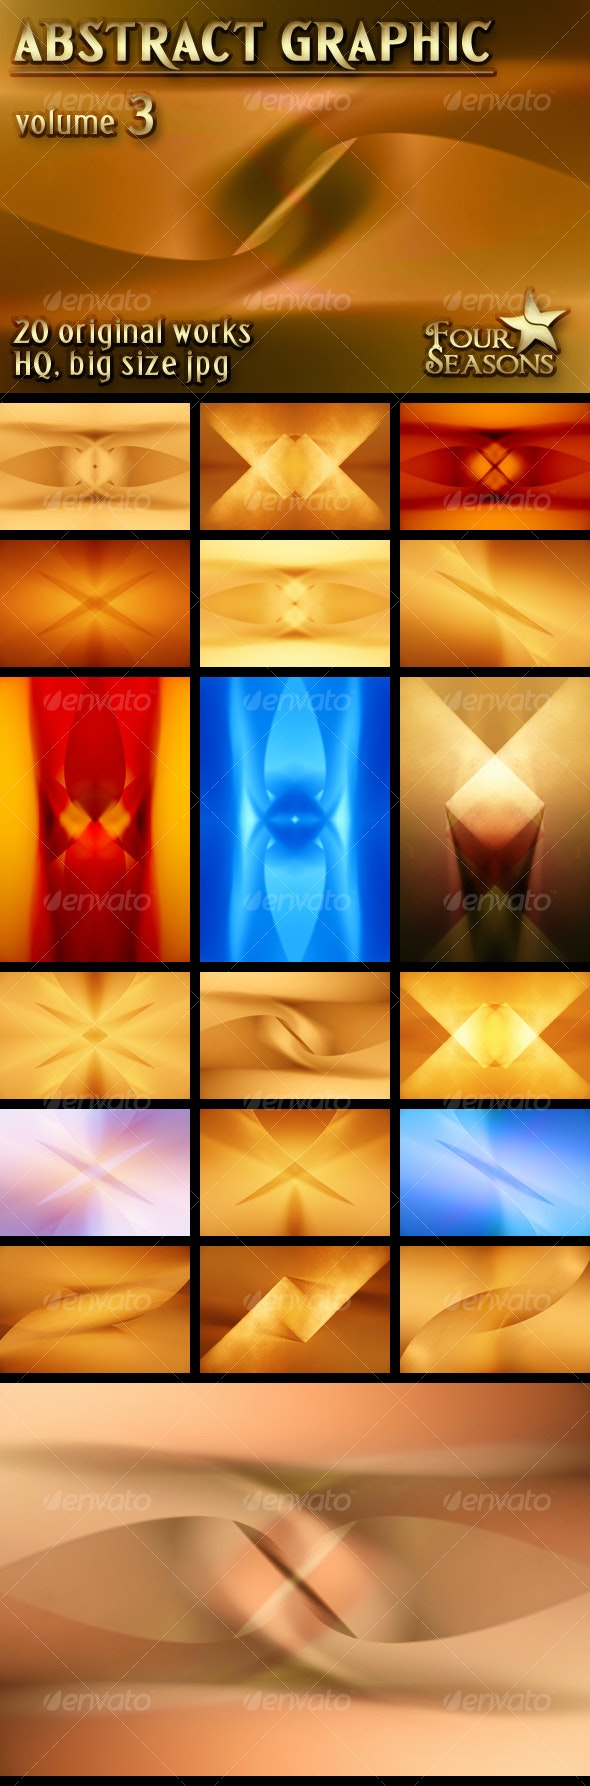 Abstract Graphic backgrounds, volume 3 - Abstract Backgrounds